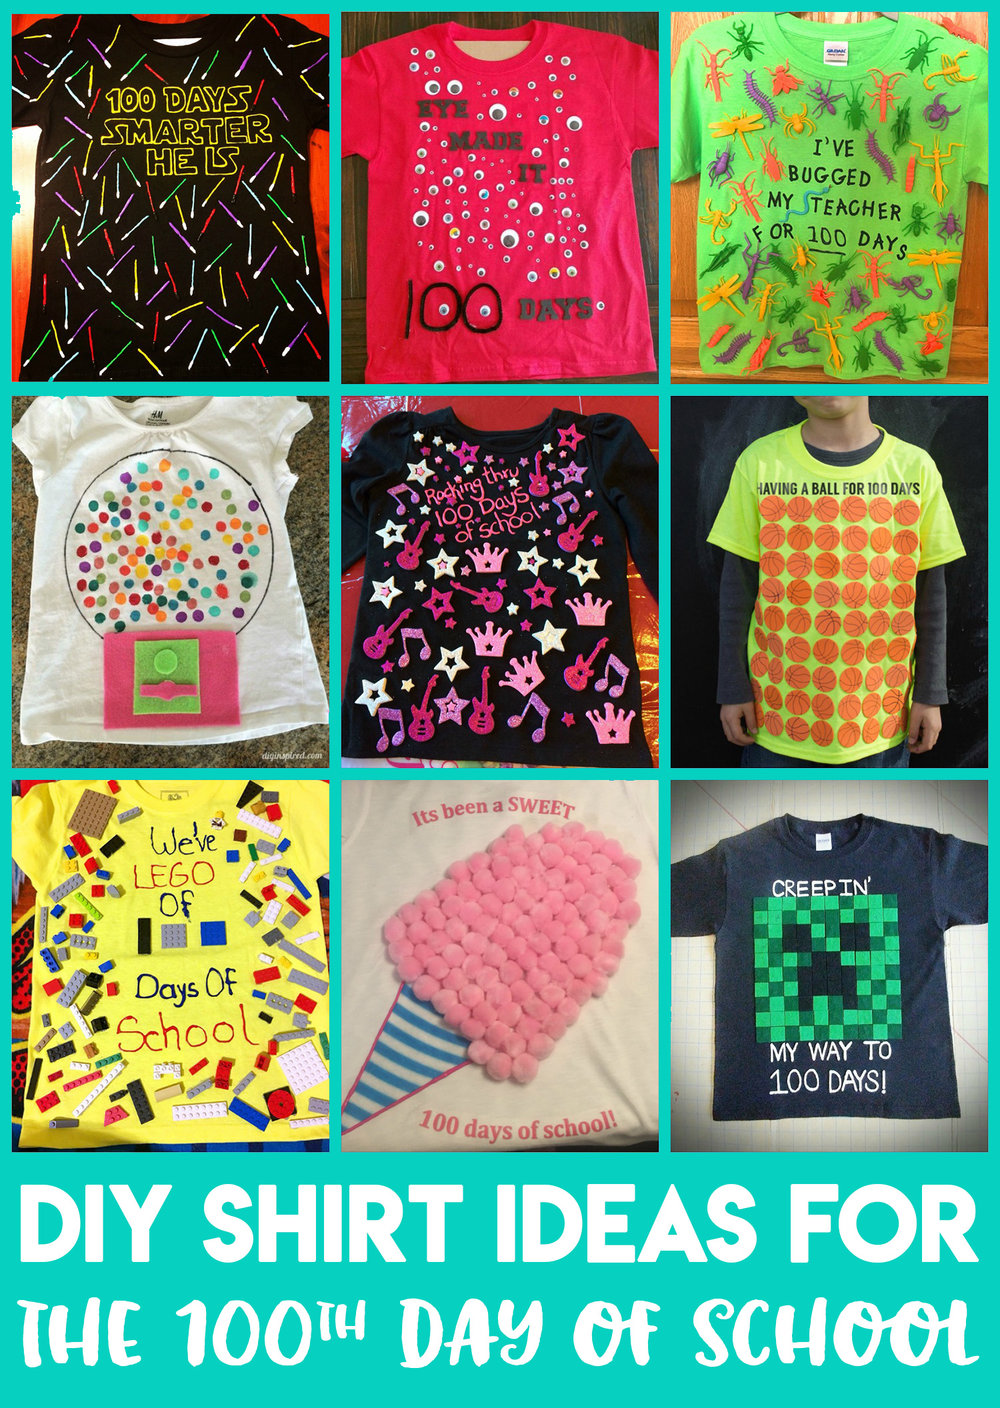 DIY-Shirt-Ideas-for-the-100th-Day-of-School.jpg